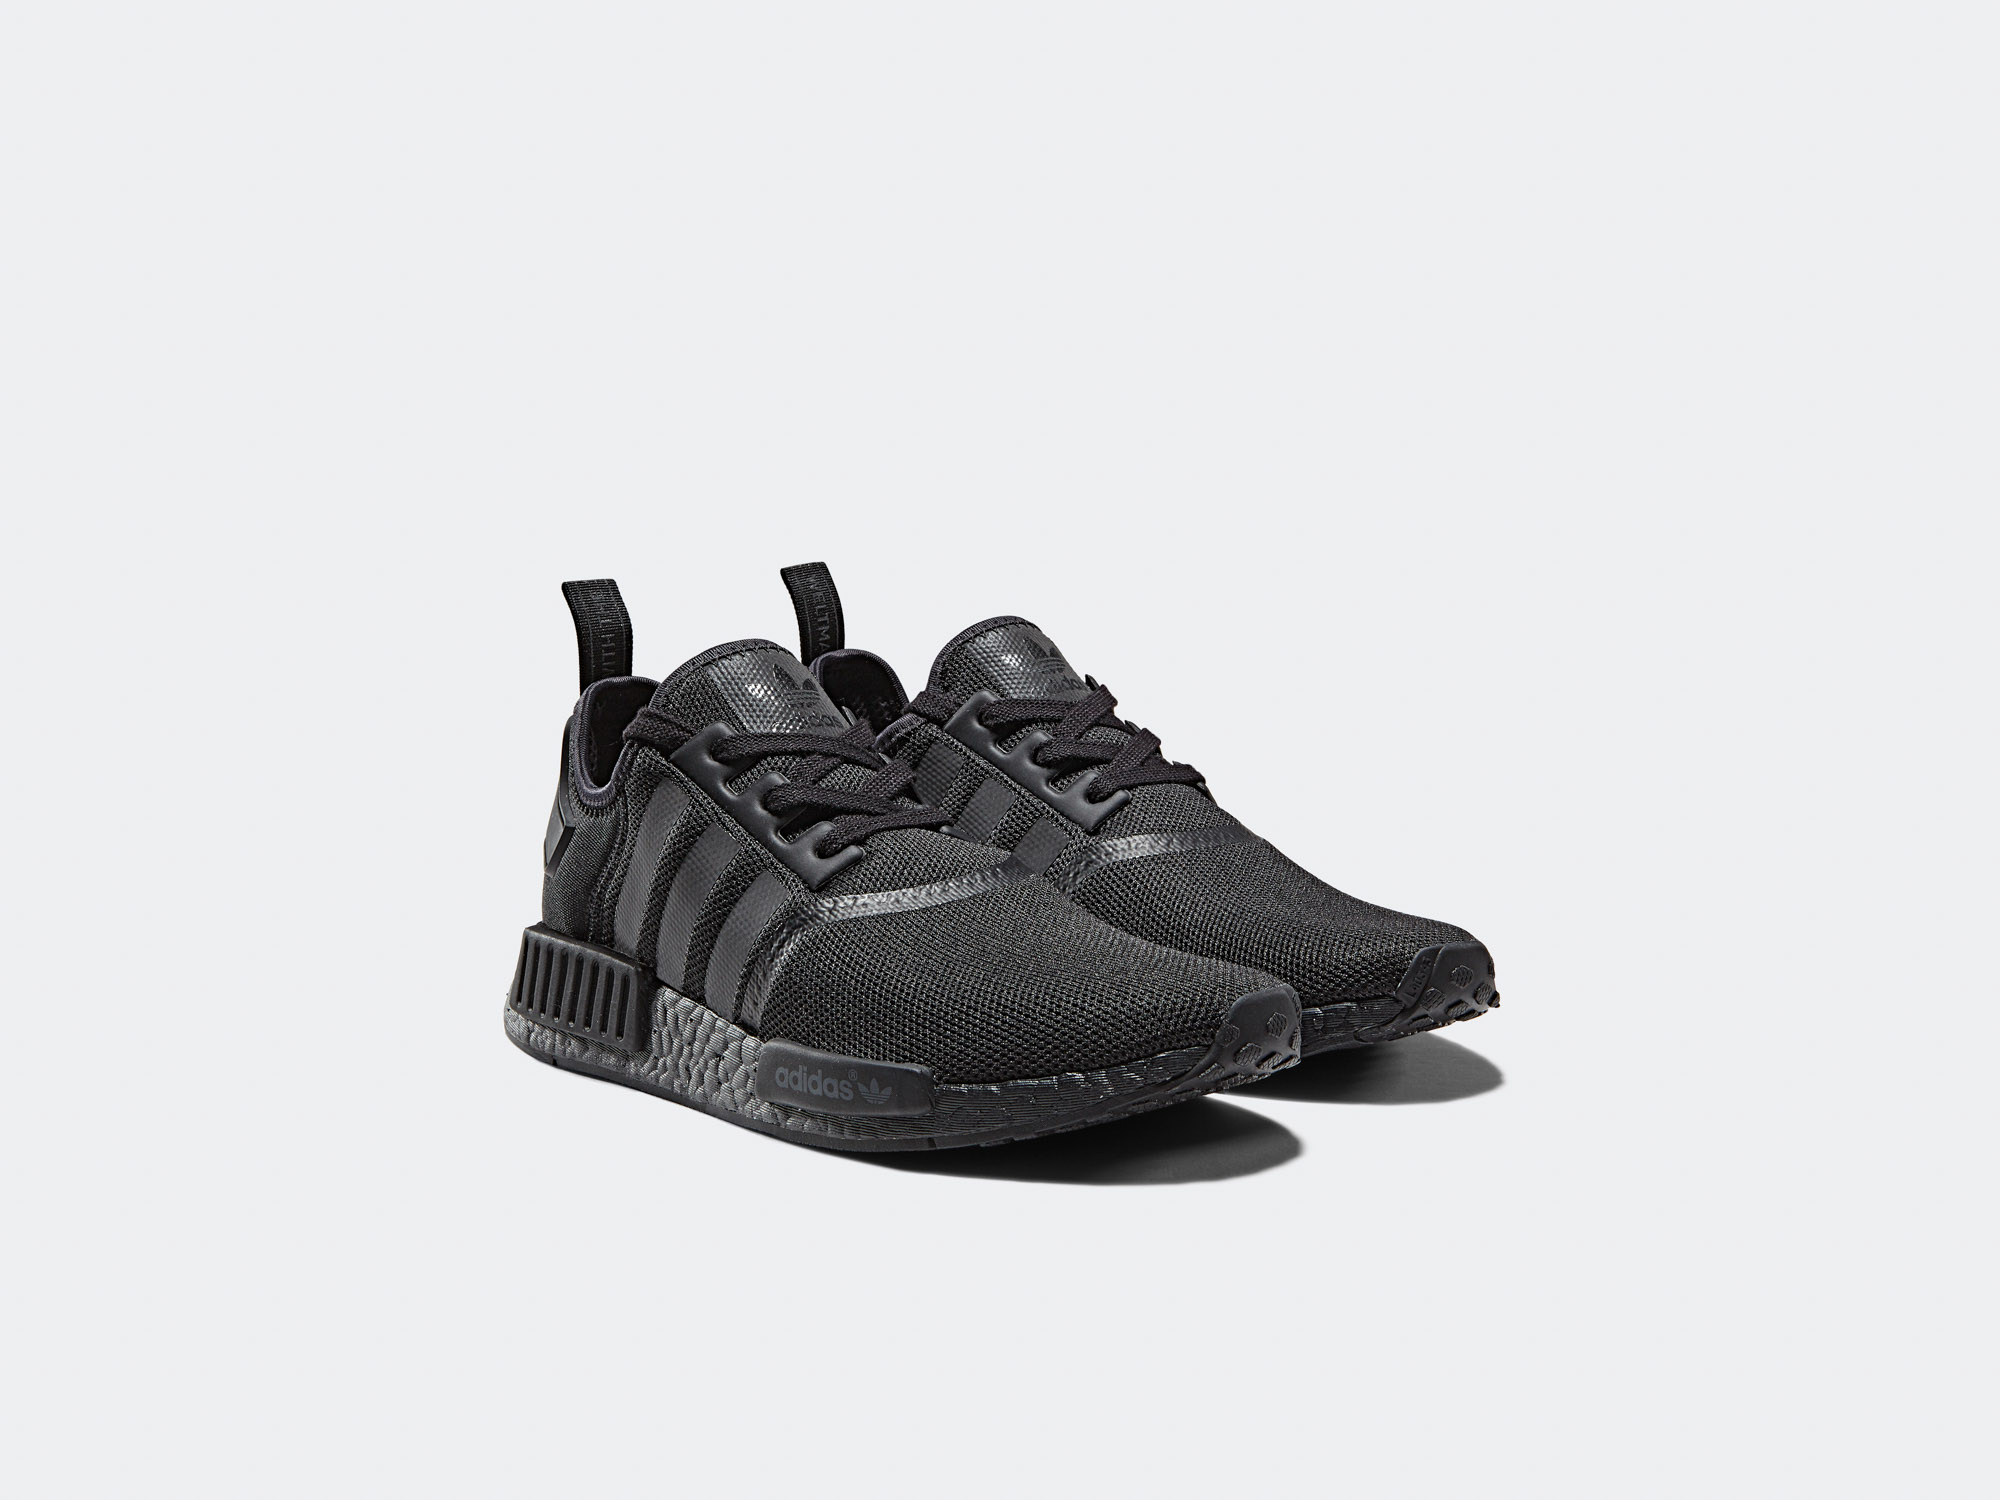 adidas NMD R1 Monochrome Pack 2